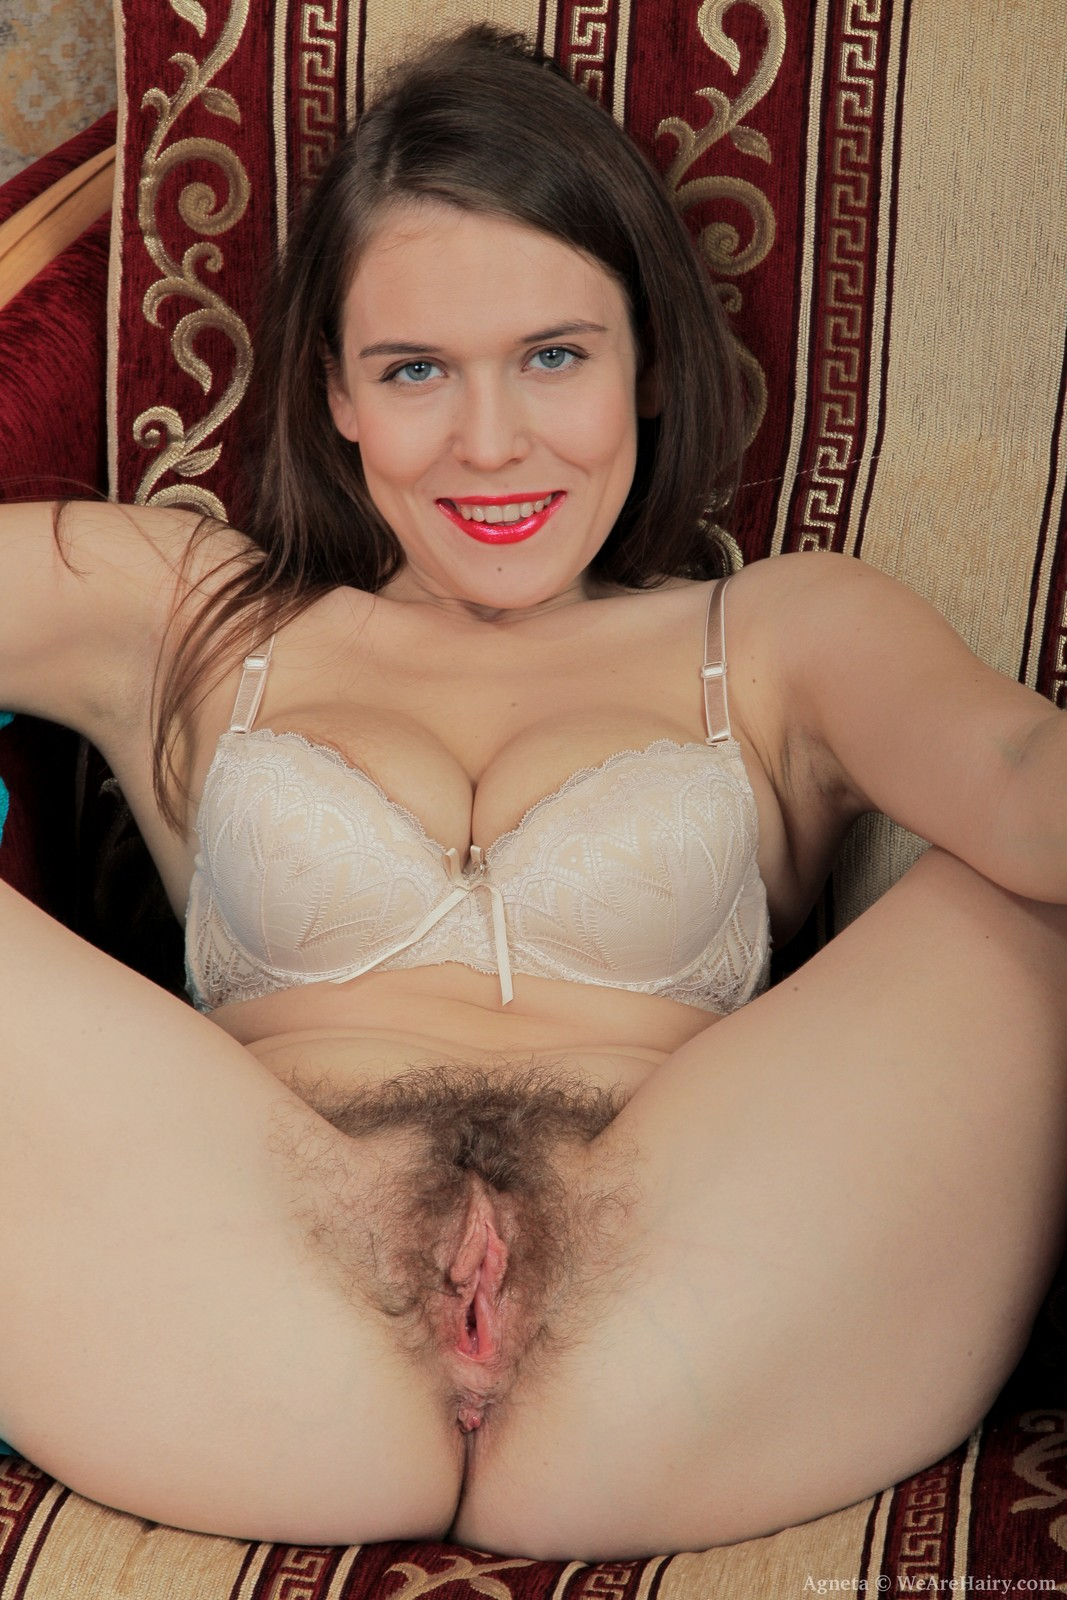 Fat girls pussy in sex, full sexy girl